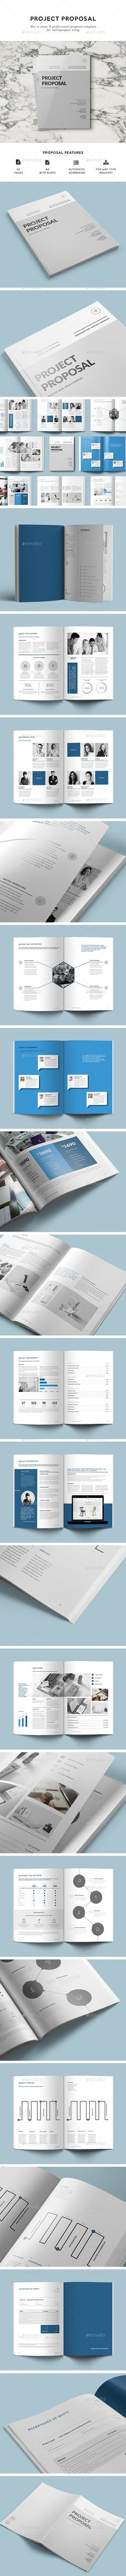 Clean Proposal Template InDesign INDD. Download here: http://graphicriver.net/item/clean-proposal/16217154?ref=ksioks